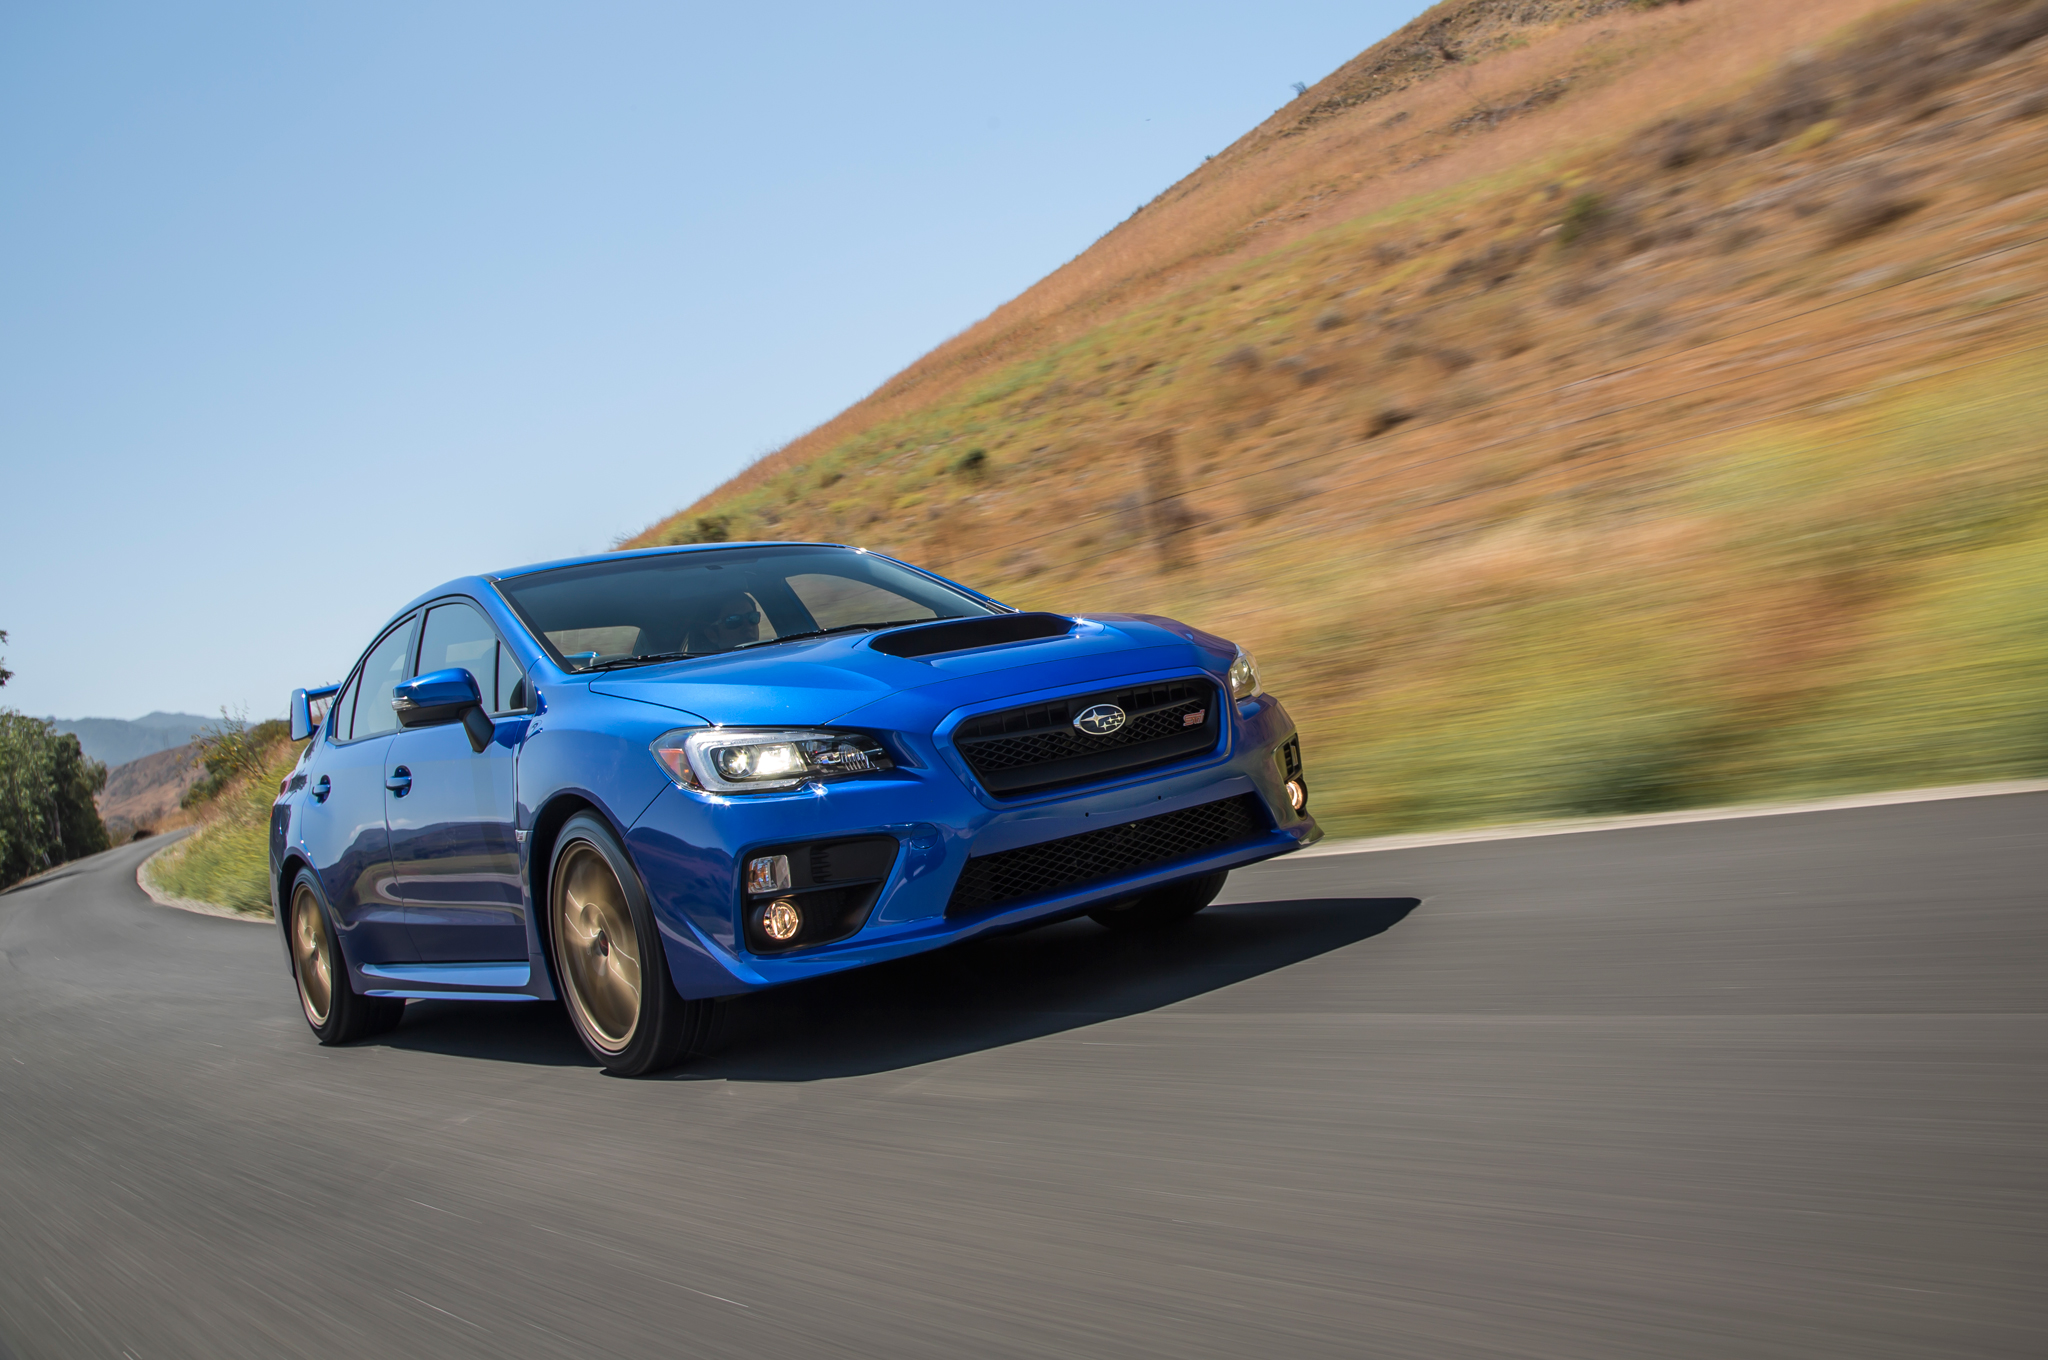 2015 Subaru WRX STI Launch Edition Arrival